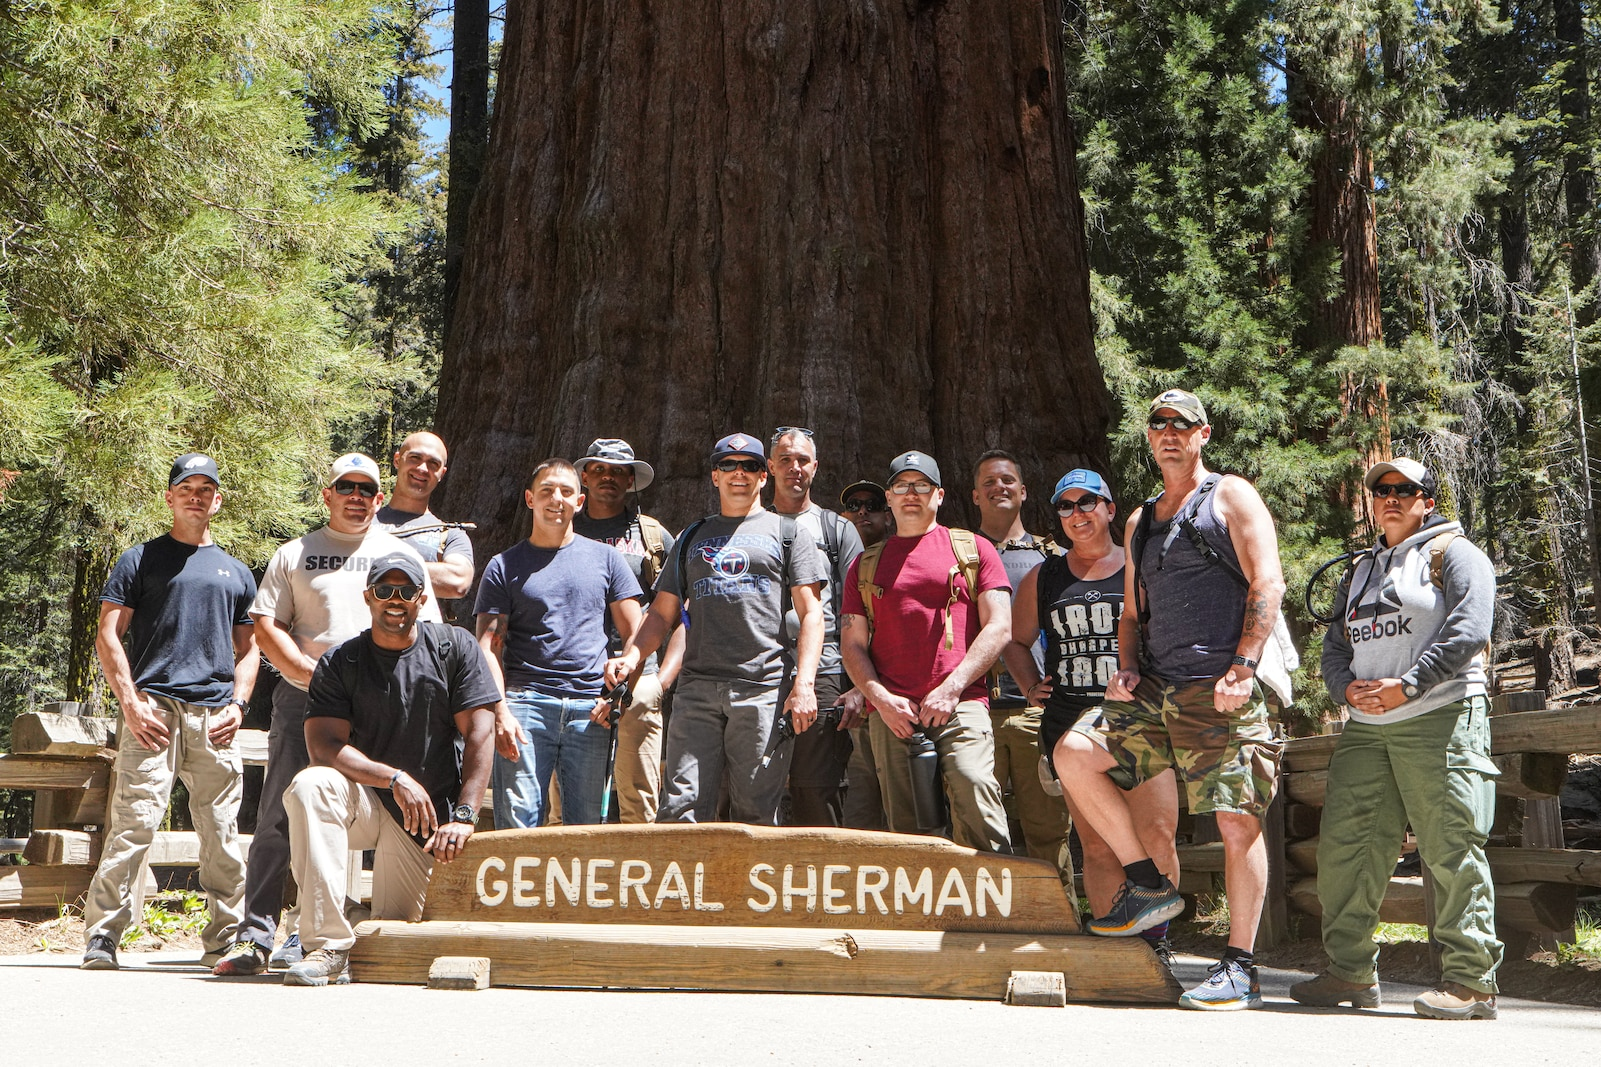 U.S. Marines with I Marine Expeditionary Force Information Group, pose for a group photo in front of the General Sherman Tree at Sequoia National Forest during a leadership retreat by Kaweah Lake, California, May 26, 2021. The three-day retreat in the Sequoia National Forest focused on connectedness and personal growth to increase individual and unit resilience. It provided participants with the tools and resources to shape their units' training programs, build character and equip their peers and subordinates with greater life resiliency skills. The interconnectedness of the roots of the Sequoia trees is a metaphor for the network of Marines and sailors that rely on each other through every rank and life situation. The trees are also a metaphor for unit Esprit-de-Corps that expands across a much larger national network. This inaugural retreat set the foundation for future, similar events that will include conditioning events, lectures, guided discussions and guest speakers. (U.S. Marine Corps Photo by Lance Cpl. Aidan Hekker)